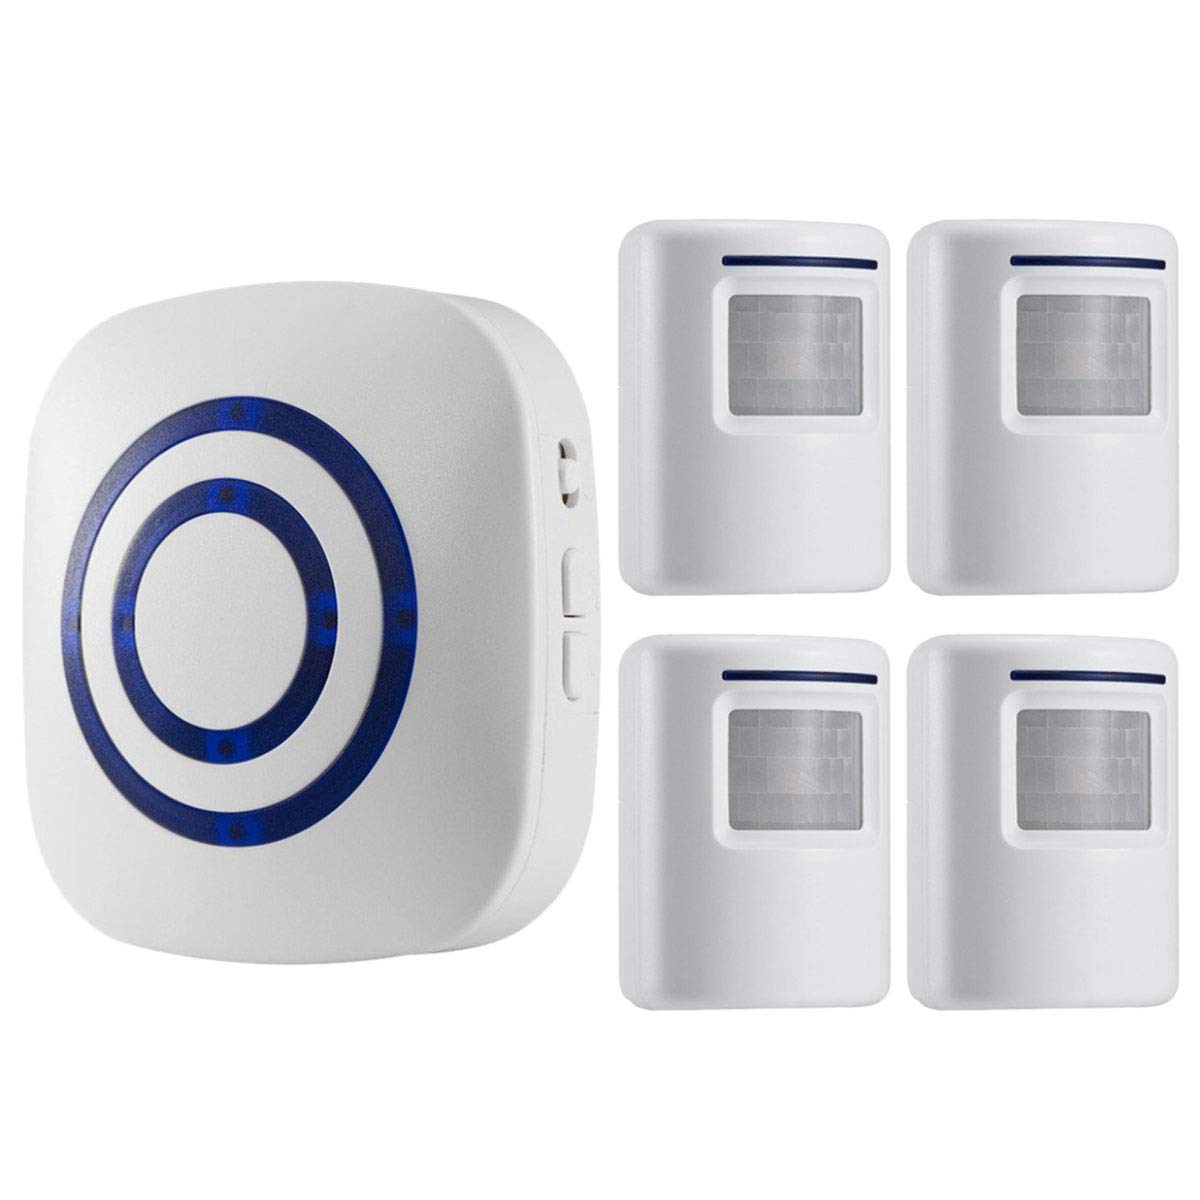 Seanme Motion Sensor Alarm, Wireless Driveway Alarm, Home Security Business  Detect Alert with 4 Sensor and 1 Receiver,38 Chime Tunes - LED Indicators :  Amazon.in: Home Improvement